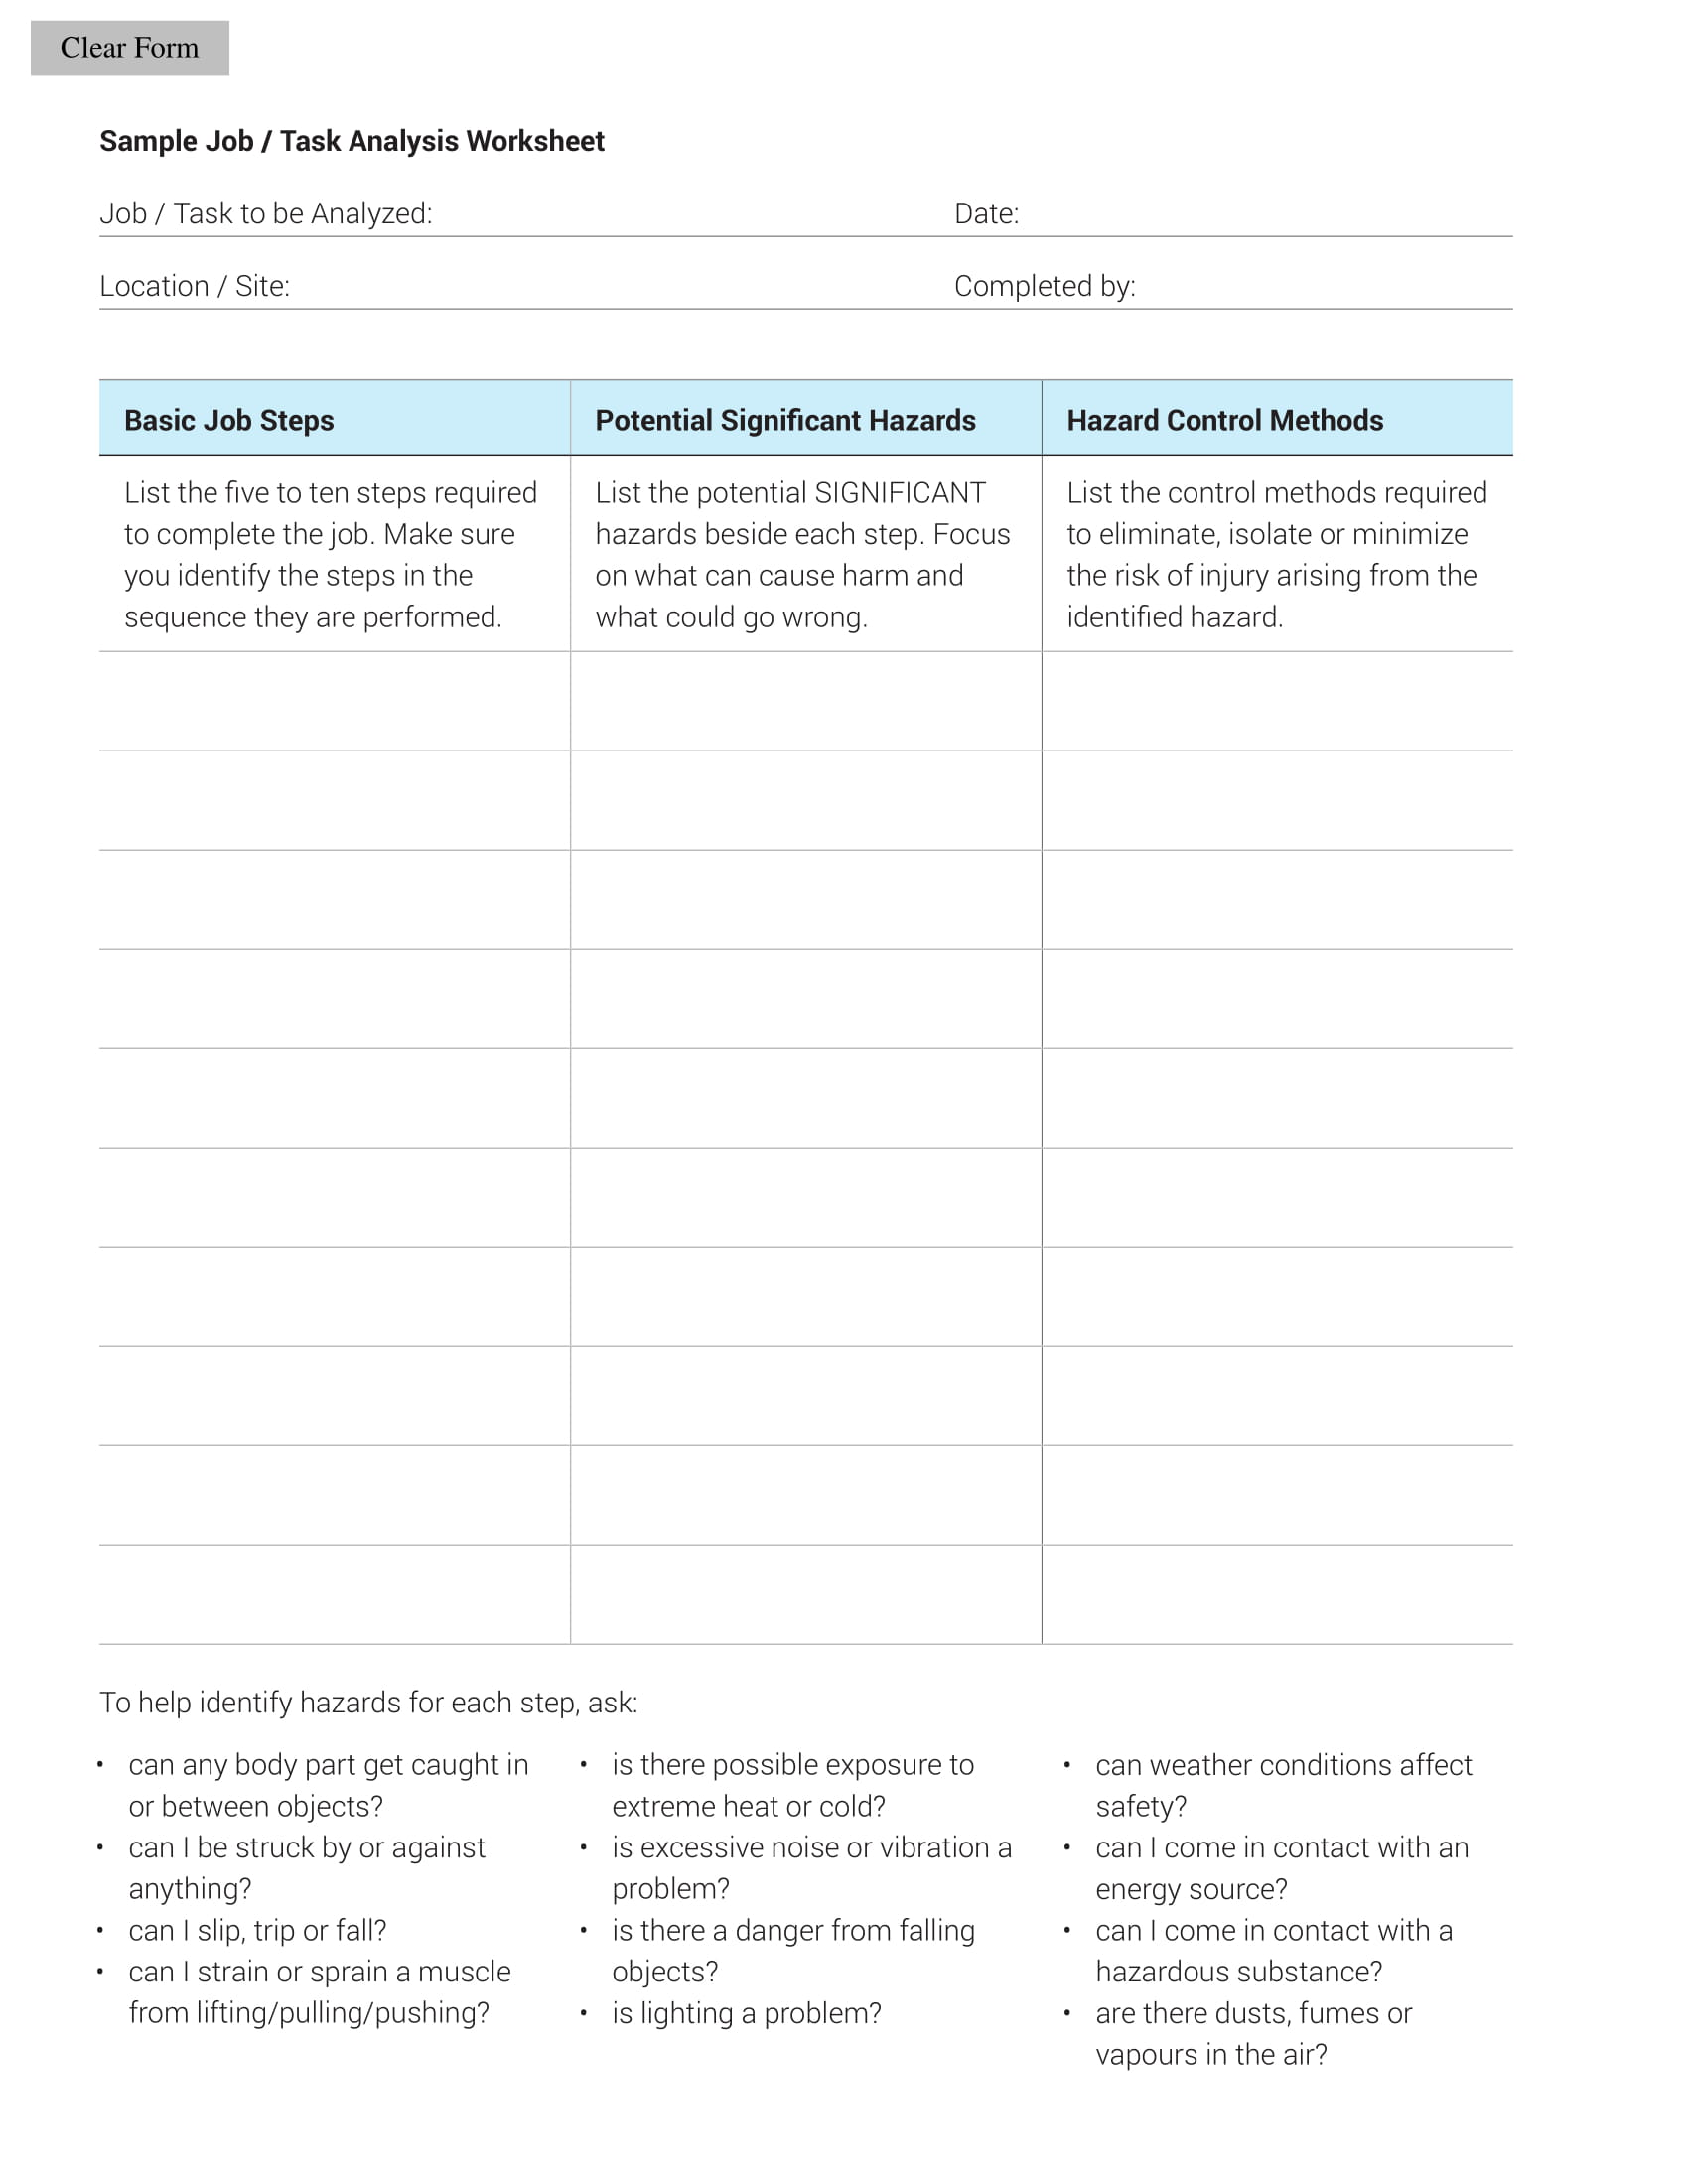 Job Taskysis Worksheet